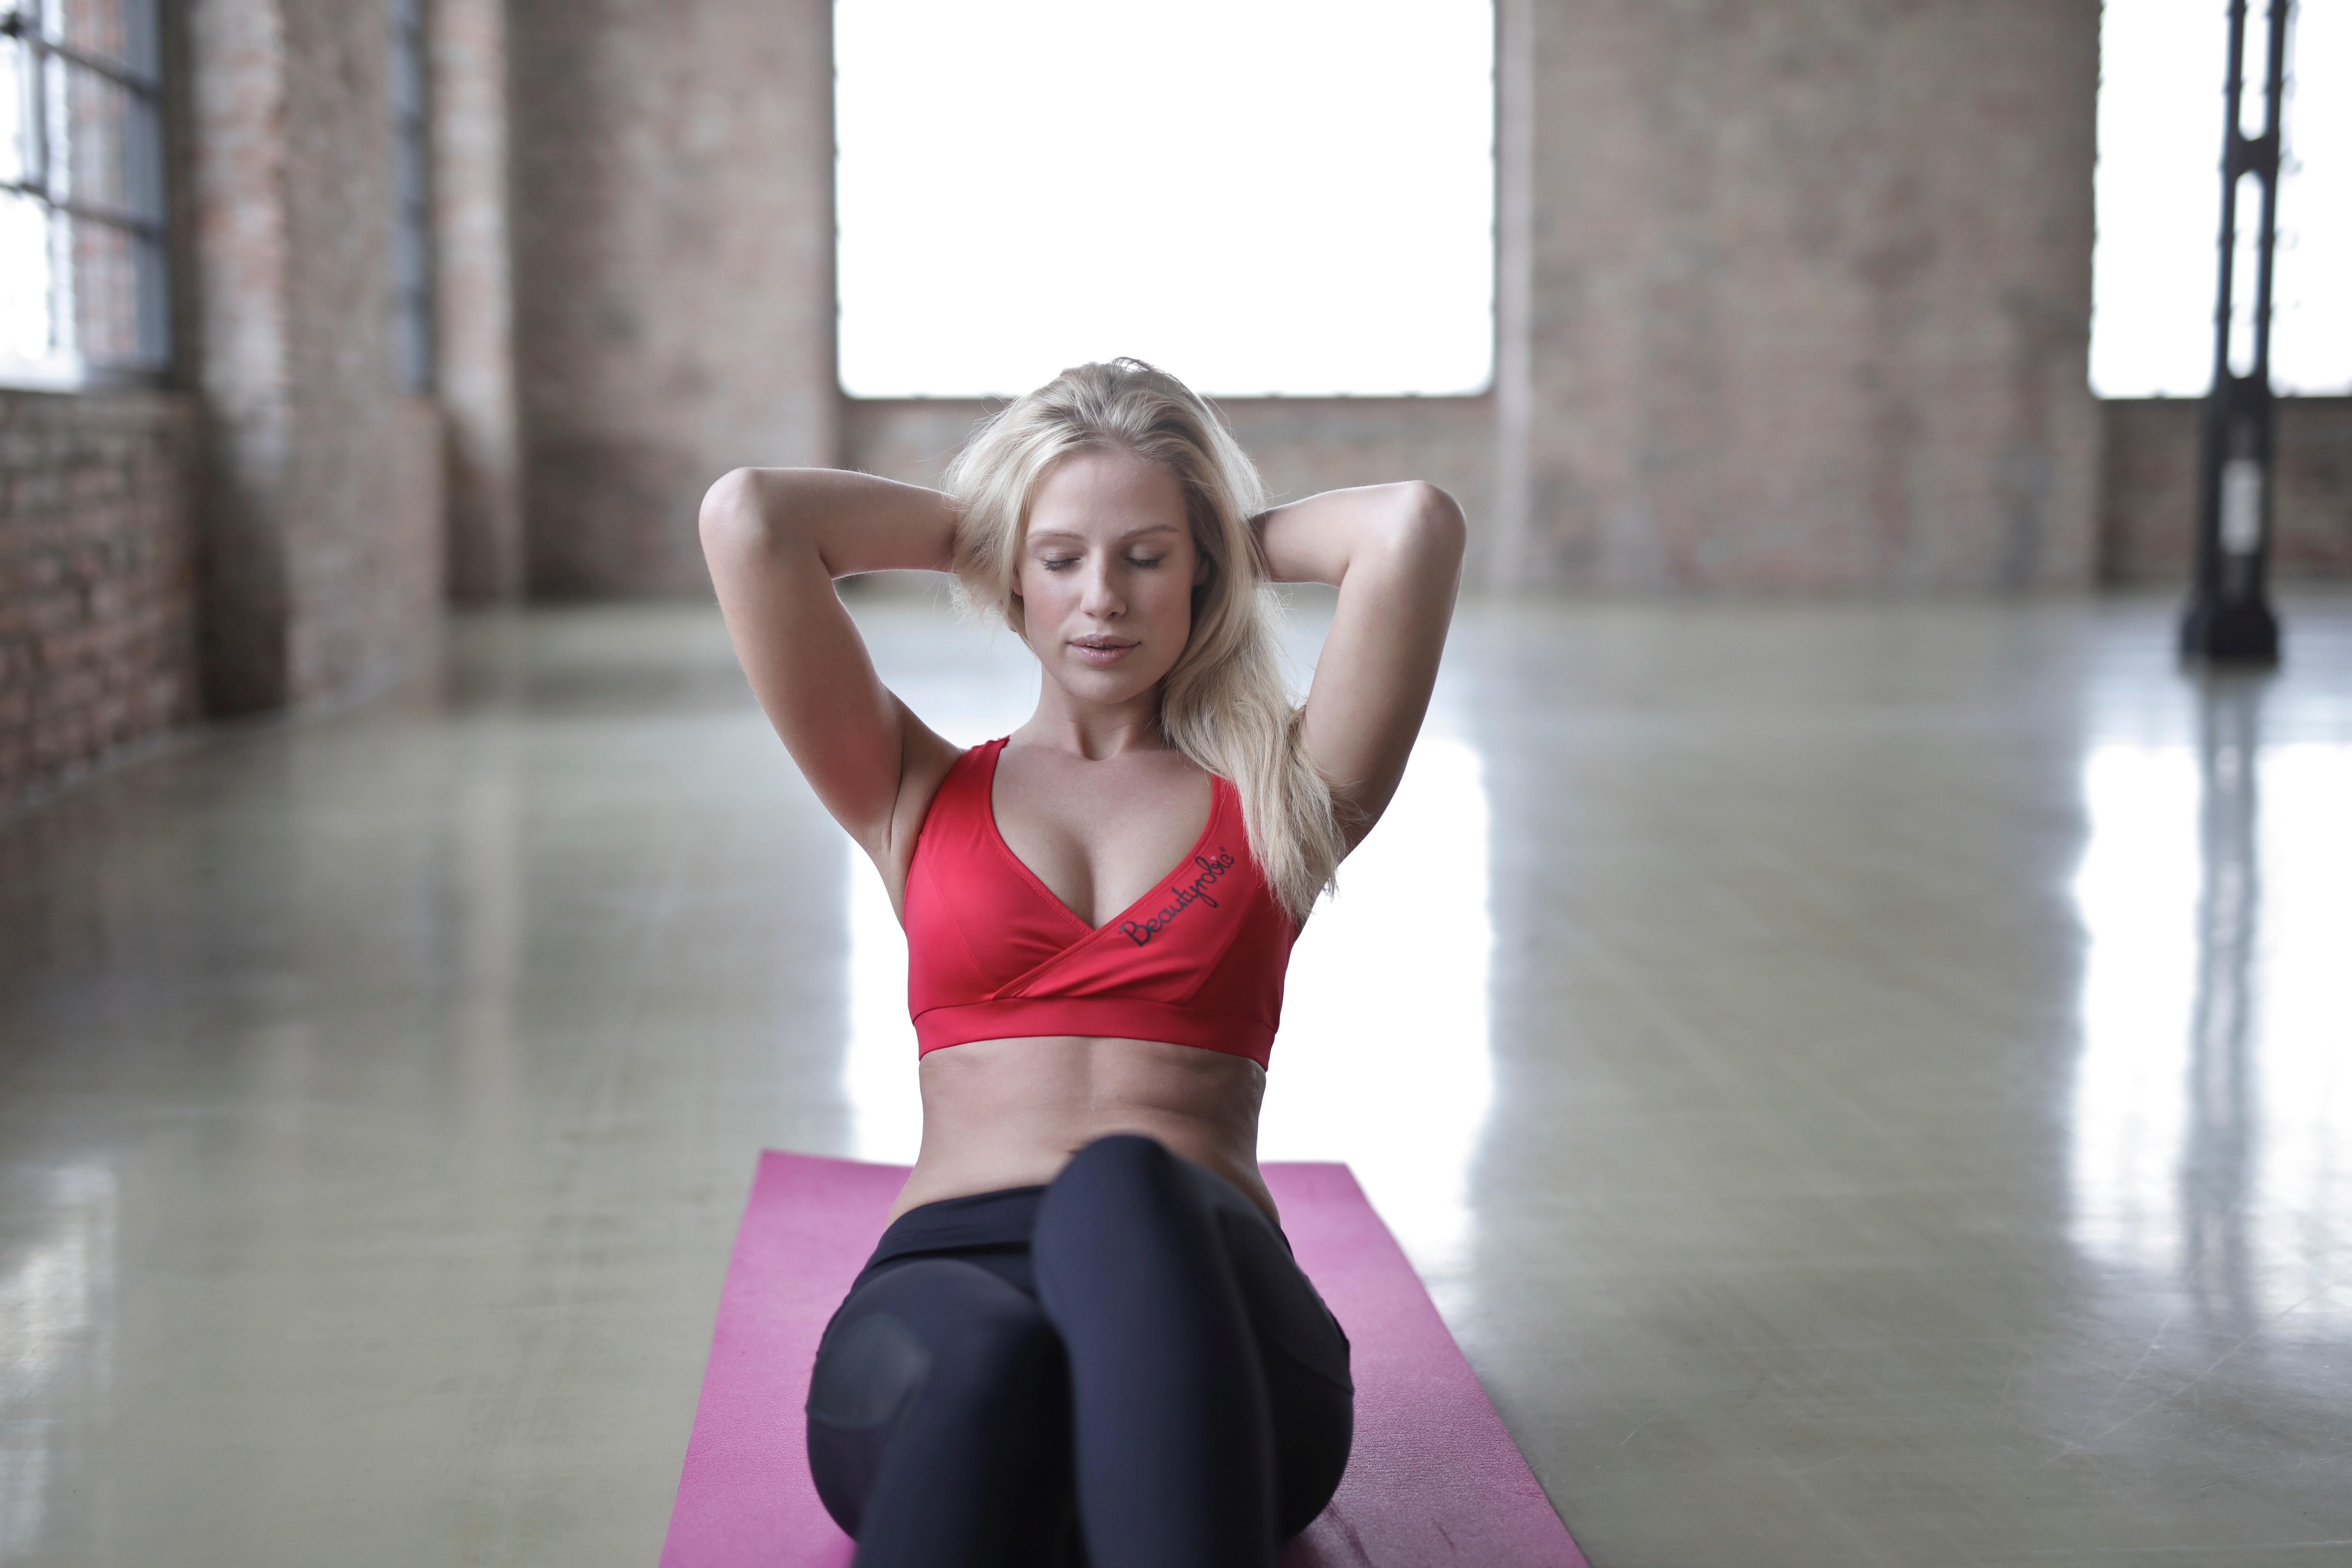 Woman Wearing Red Sports Bra, Indoors, Yoga, Workout, Woman, HQ Photo